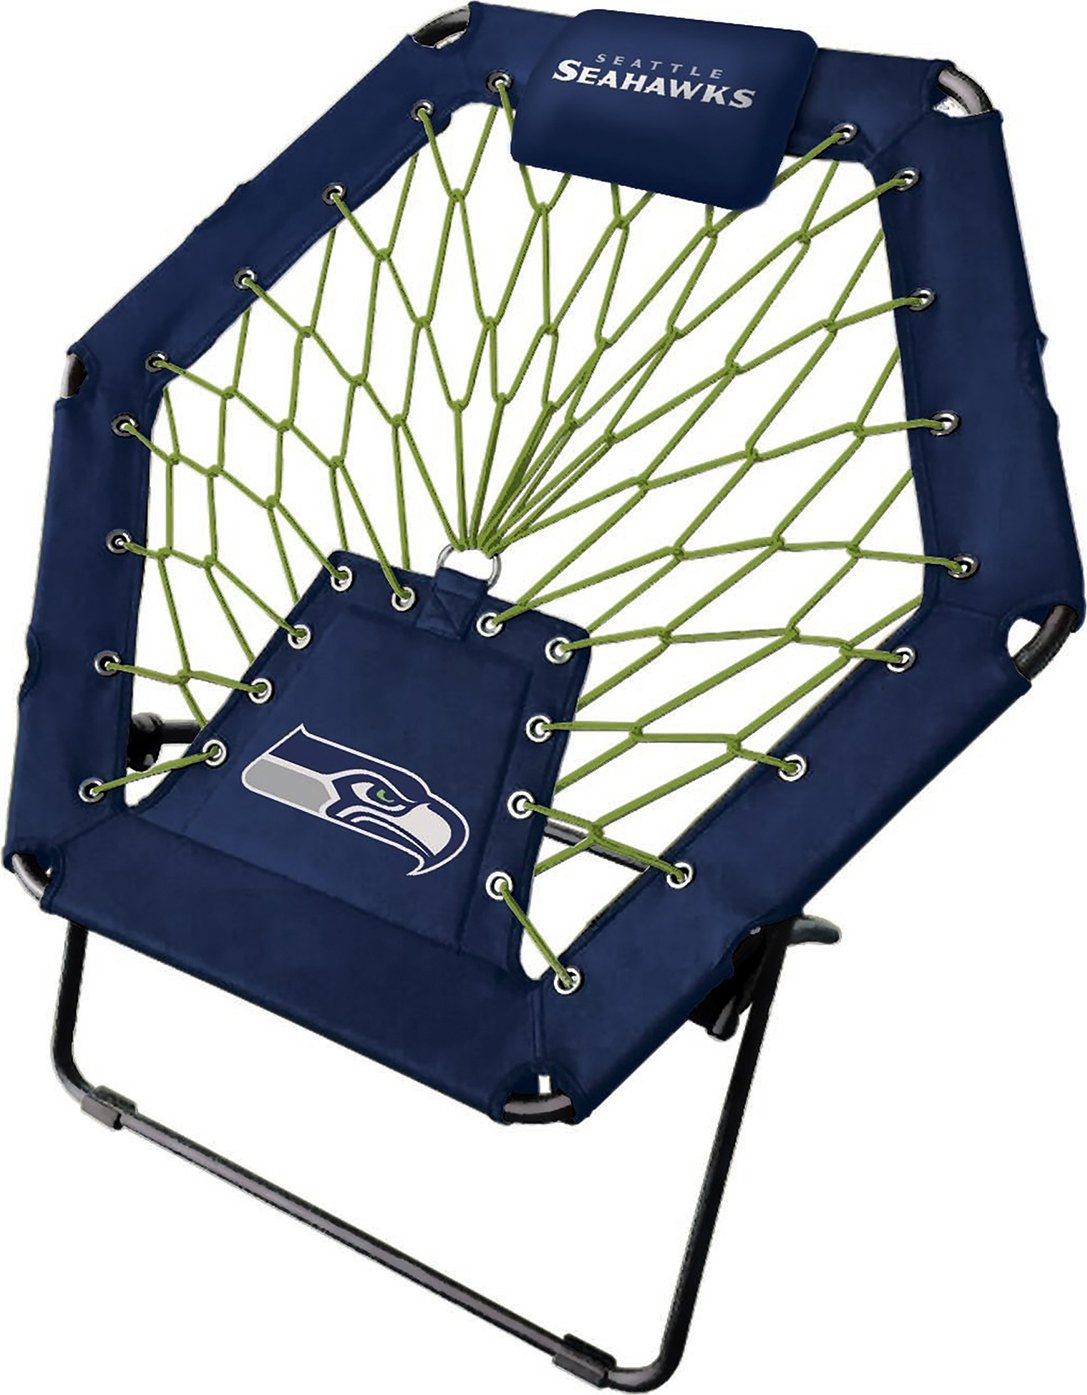 Imperial Officially Licensed NFL Furniture: Premium Bungee Chair, Seattle Seahawks by Imperial